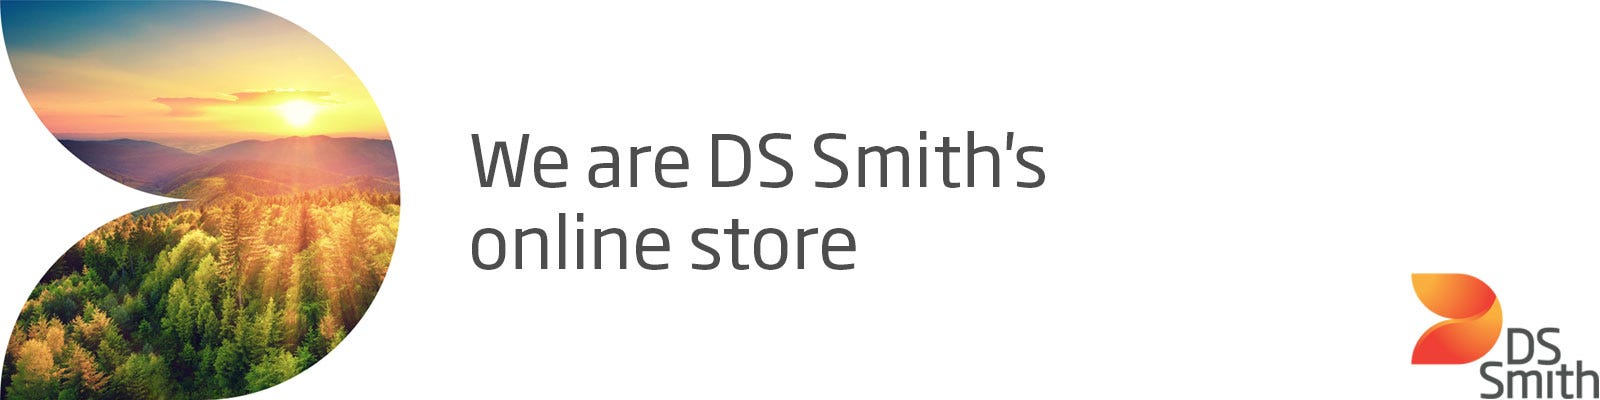 We are DS Smith online store